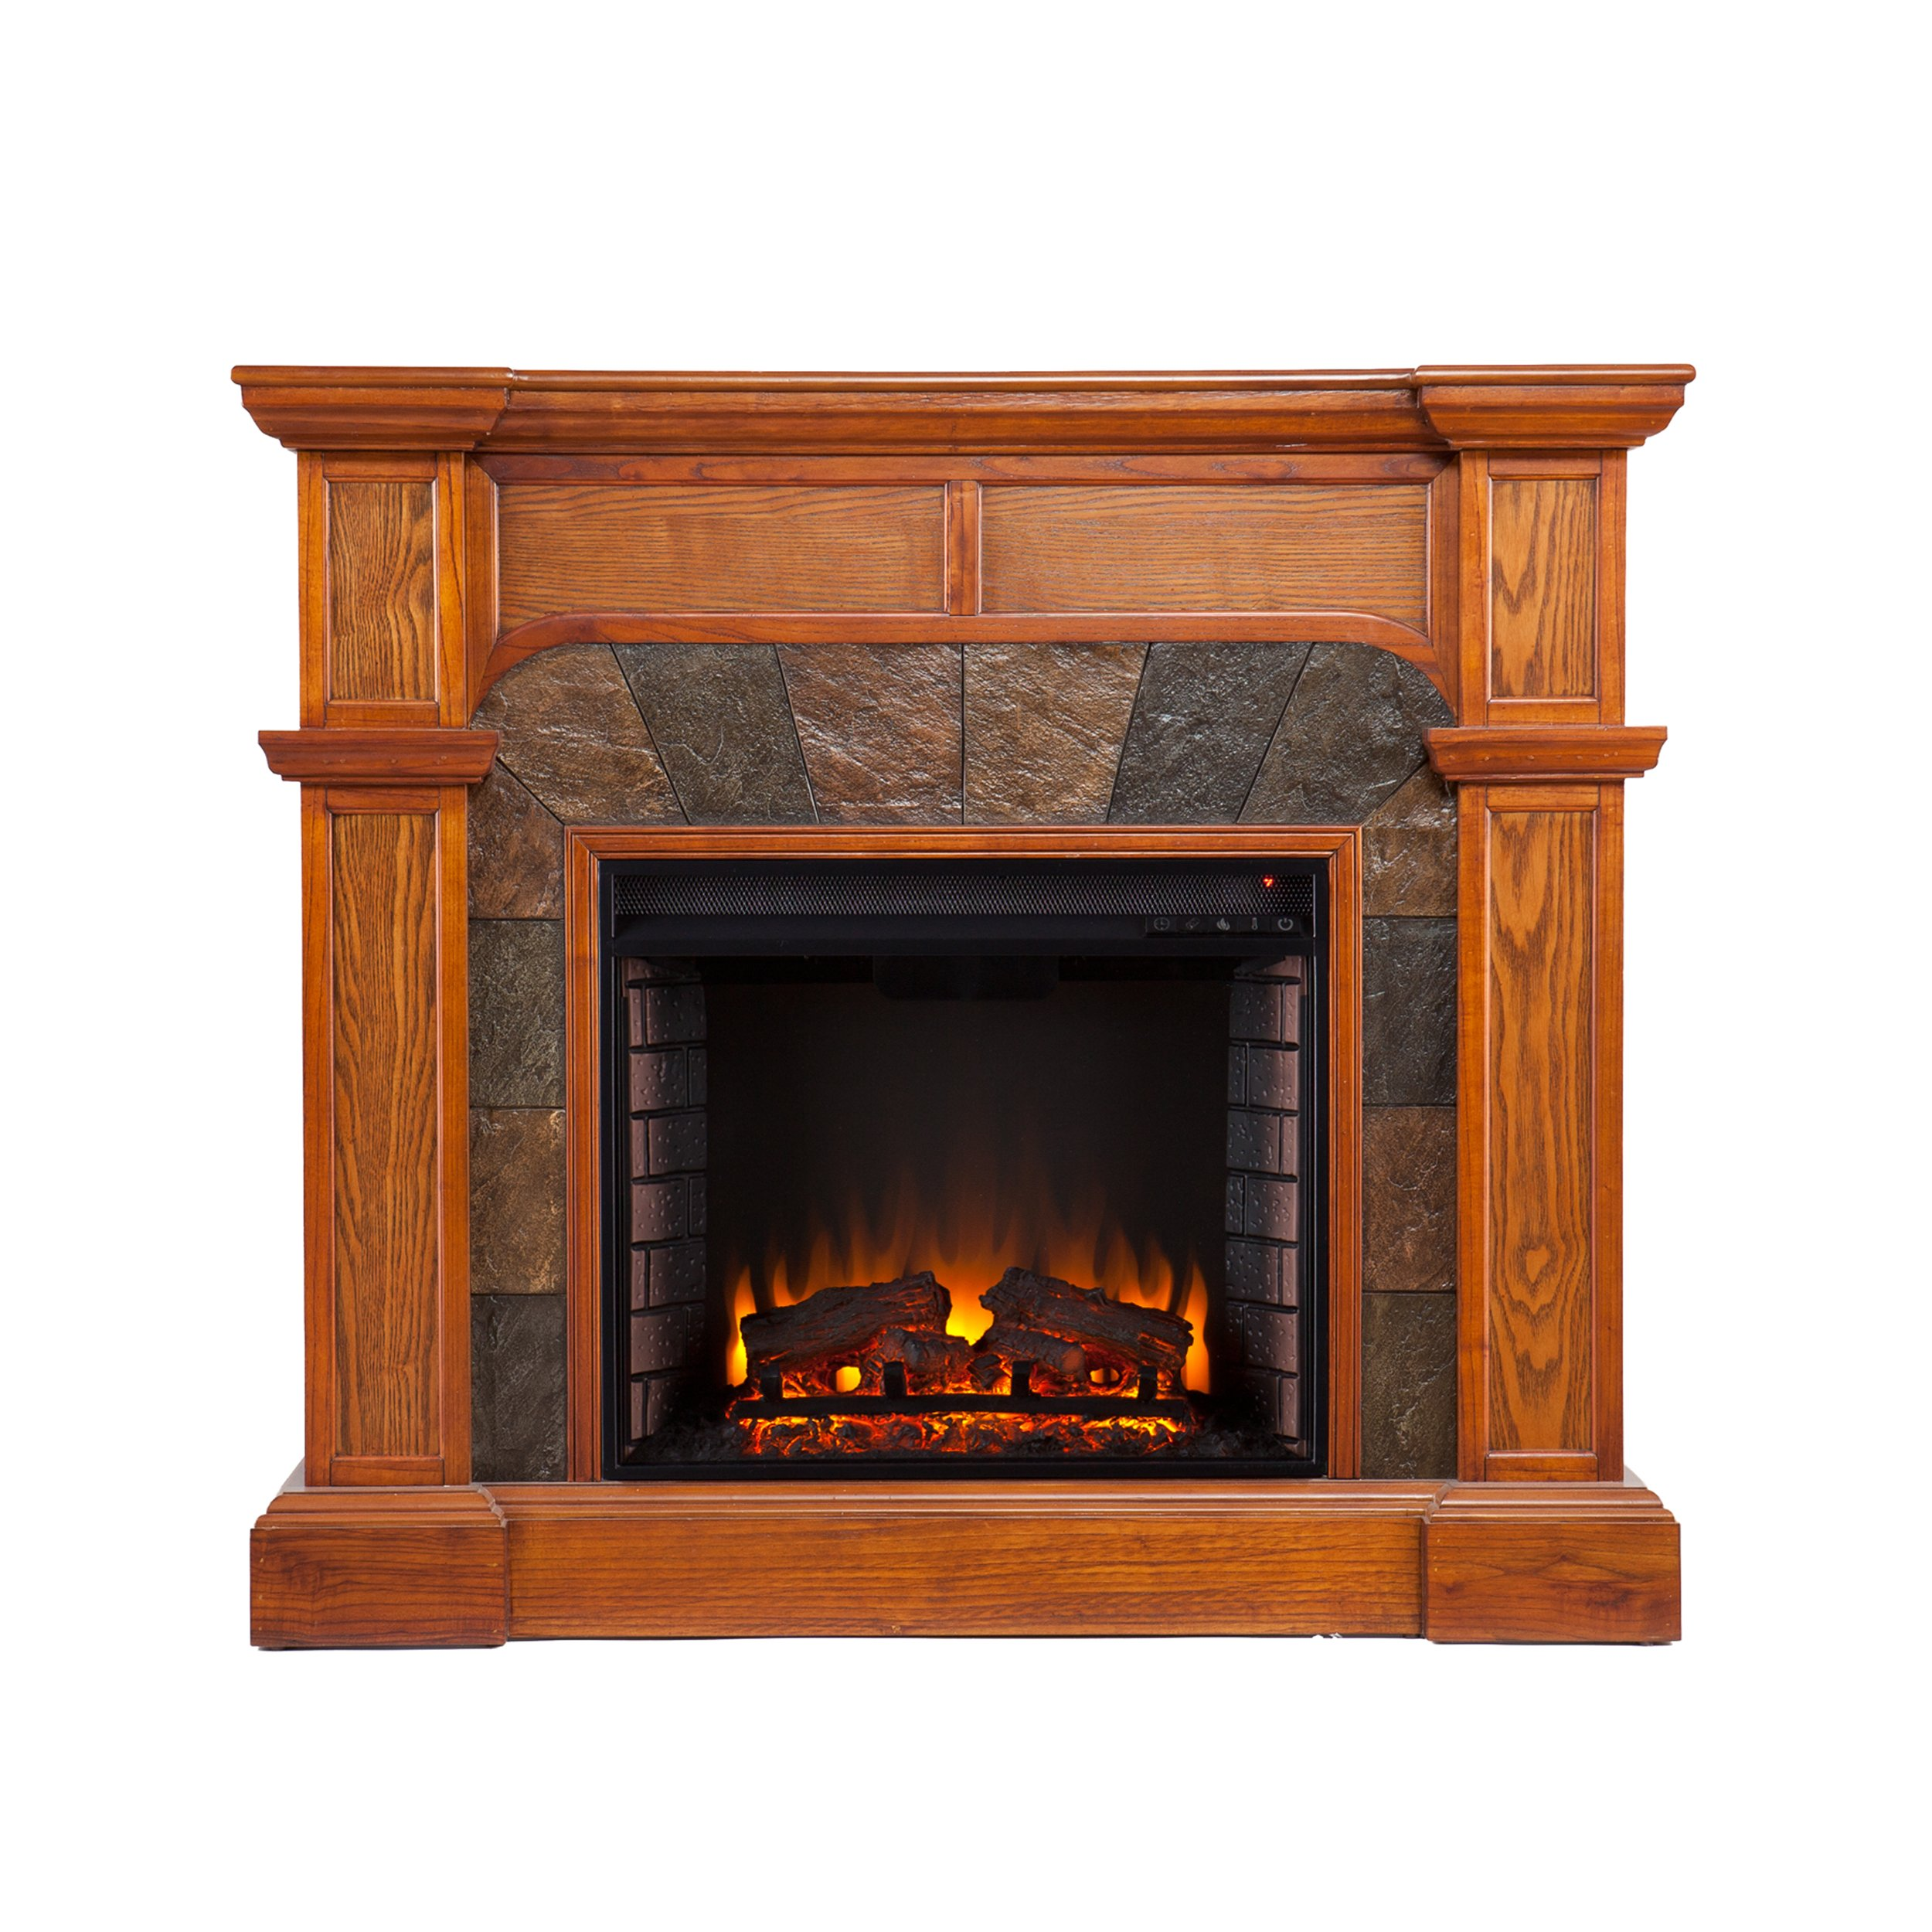 Cartwright Convertible Electric Fireplace - Mission Oak by Southern Enterprises